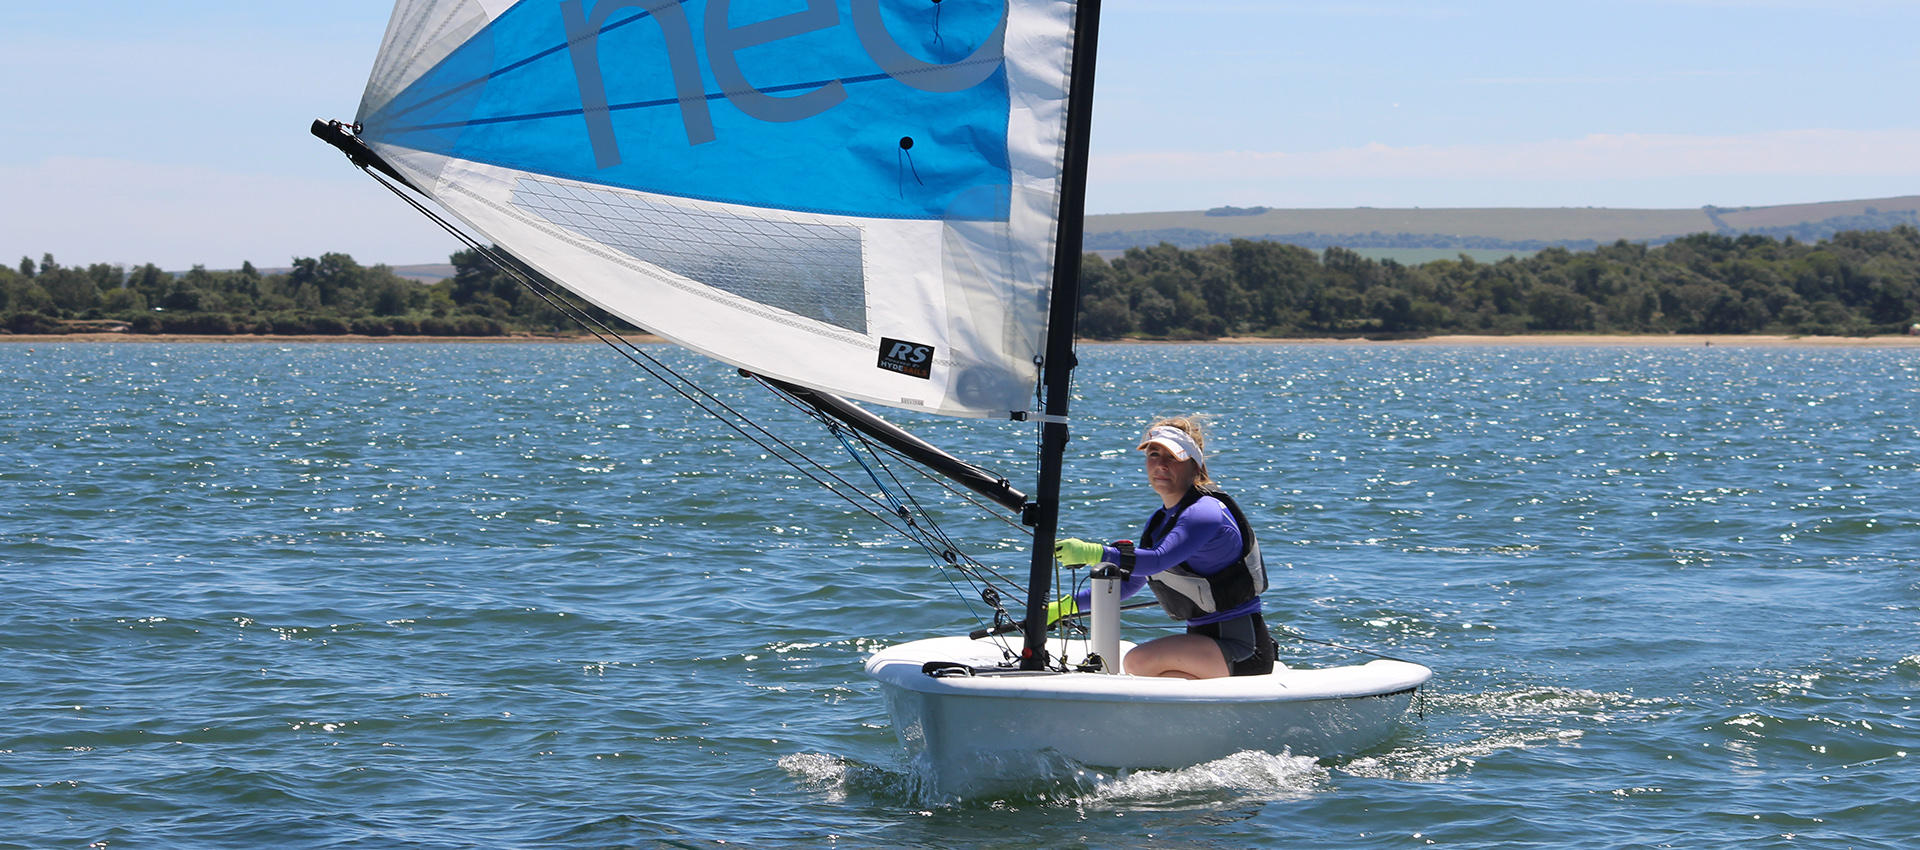 RS Neo Central Coast Sailing 3.jpg